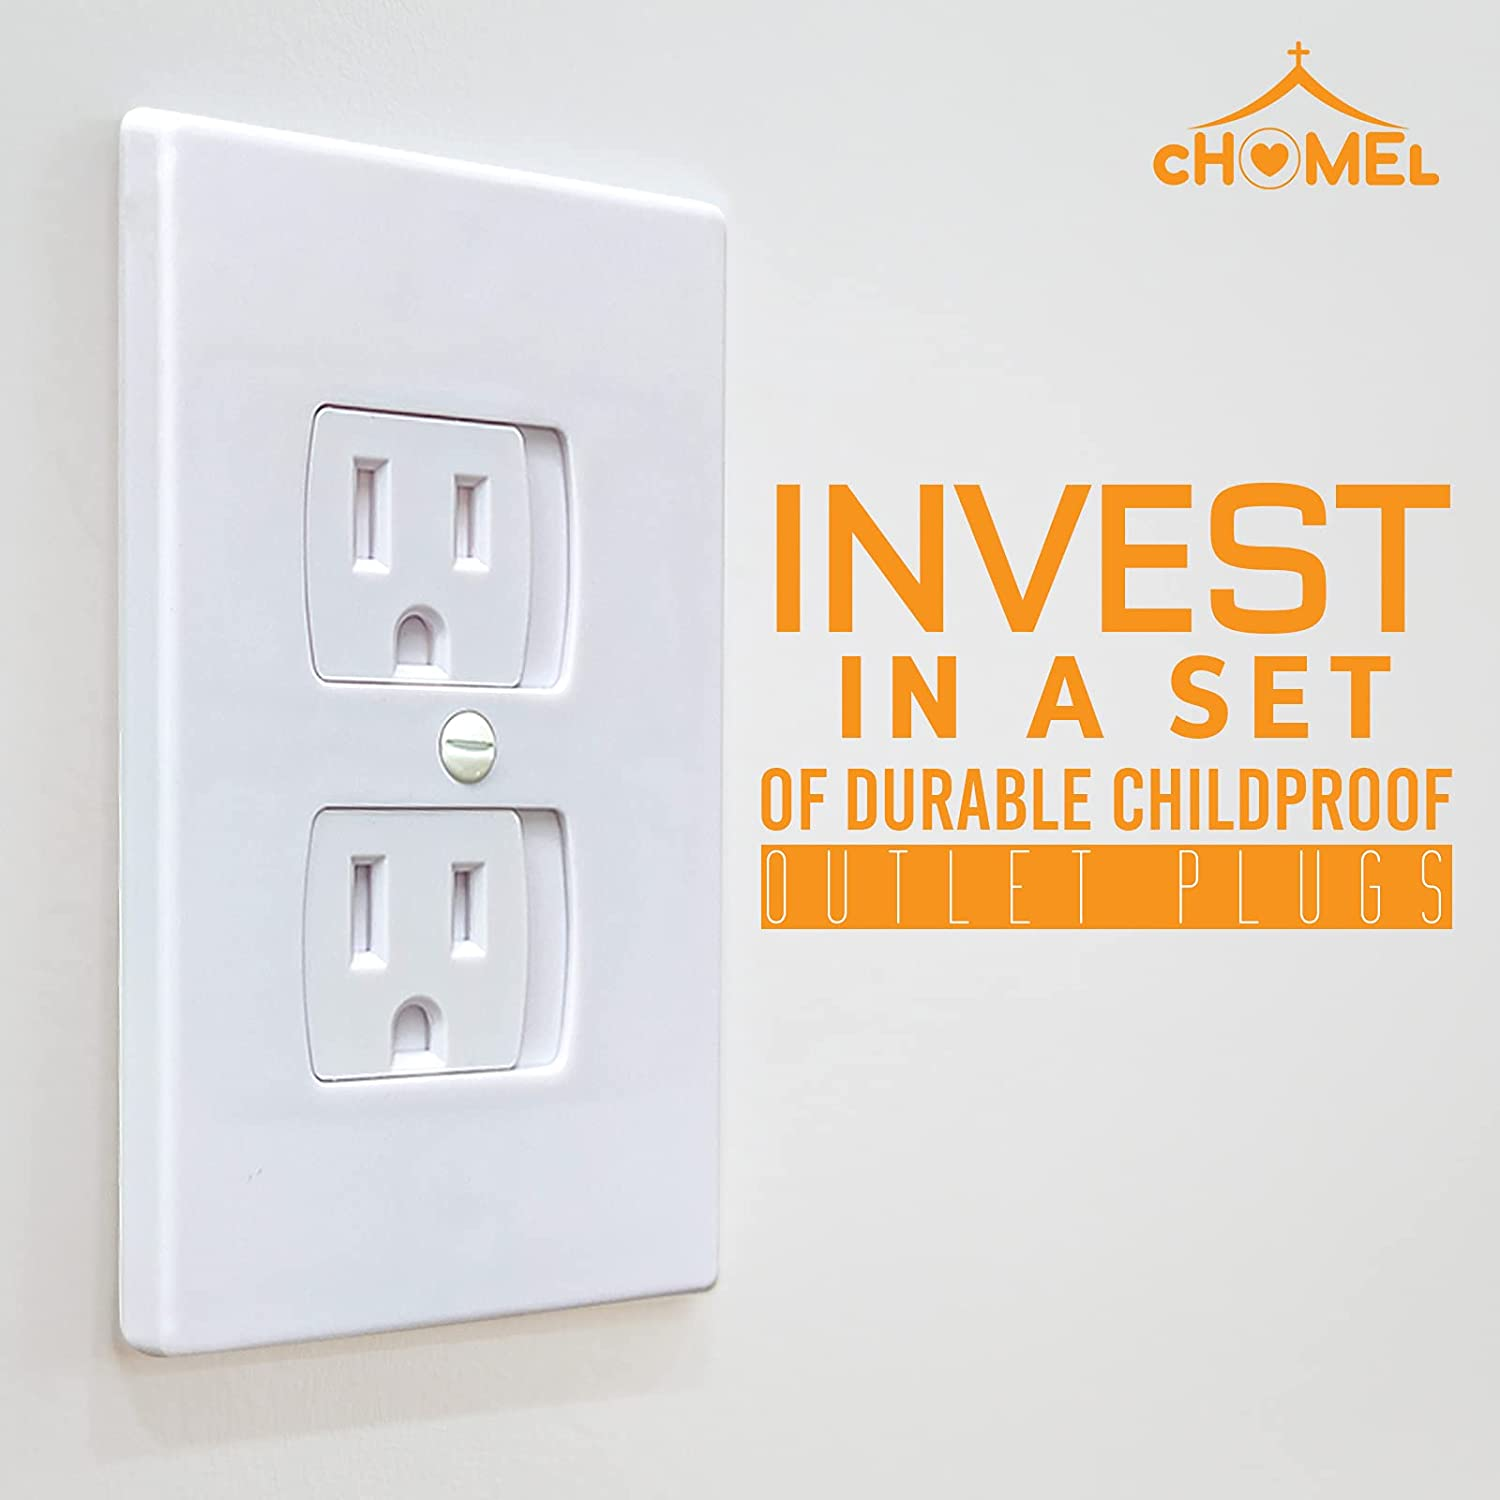 Standard Outlet Covers Child Proof by Chomel–Baby Proof Outlet Covers–Plug Covers for Electrical Outlets–Child Safety Outlet Covers-Safety Outlet Plug Cover Set–Child Outlet Protectors for Baby